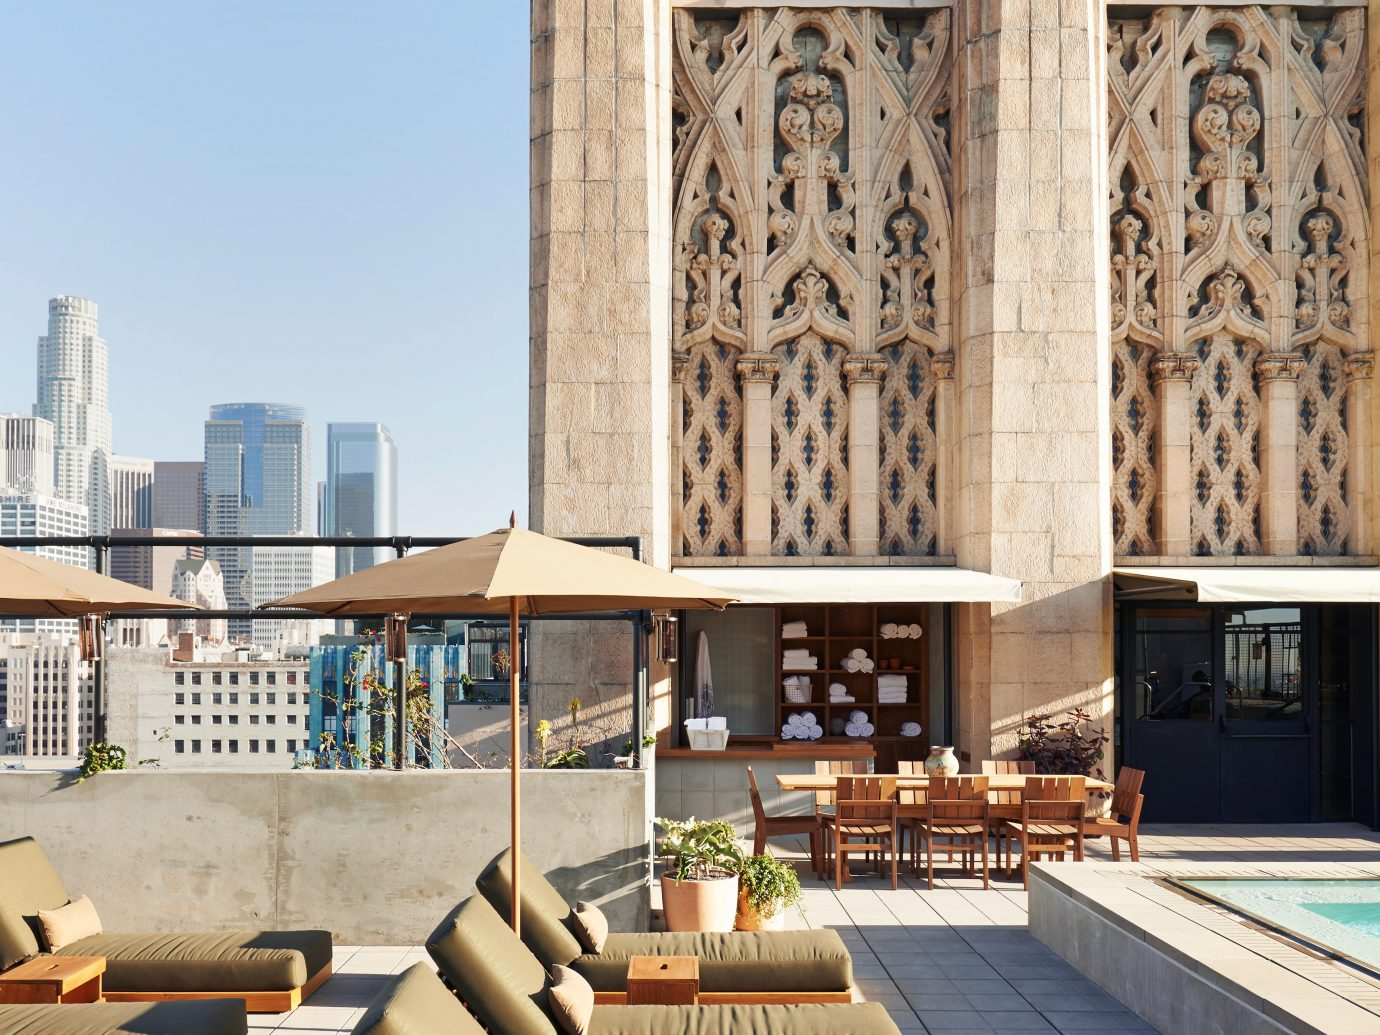 City Elegant Hip Hotels Lounge Modern Outdoors Patio Pool Rooftop landmark Architecture cathedral facade interior design place of worship estate